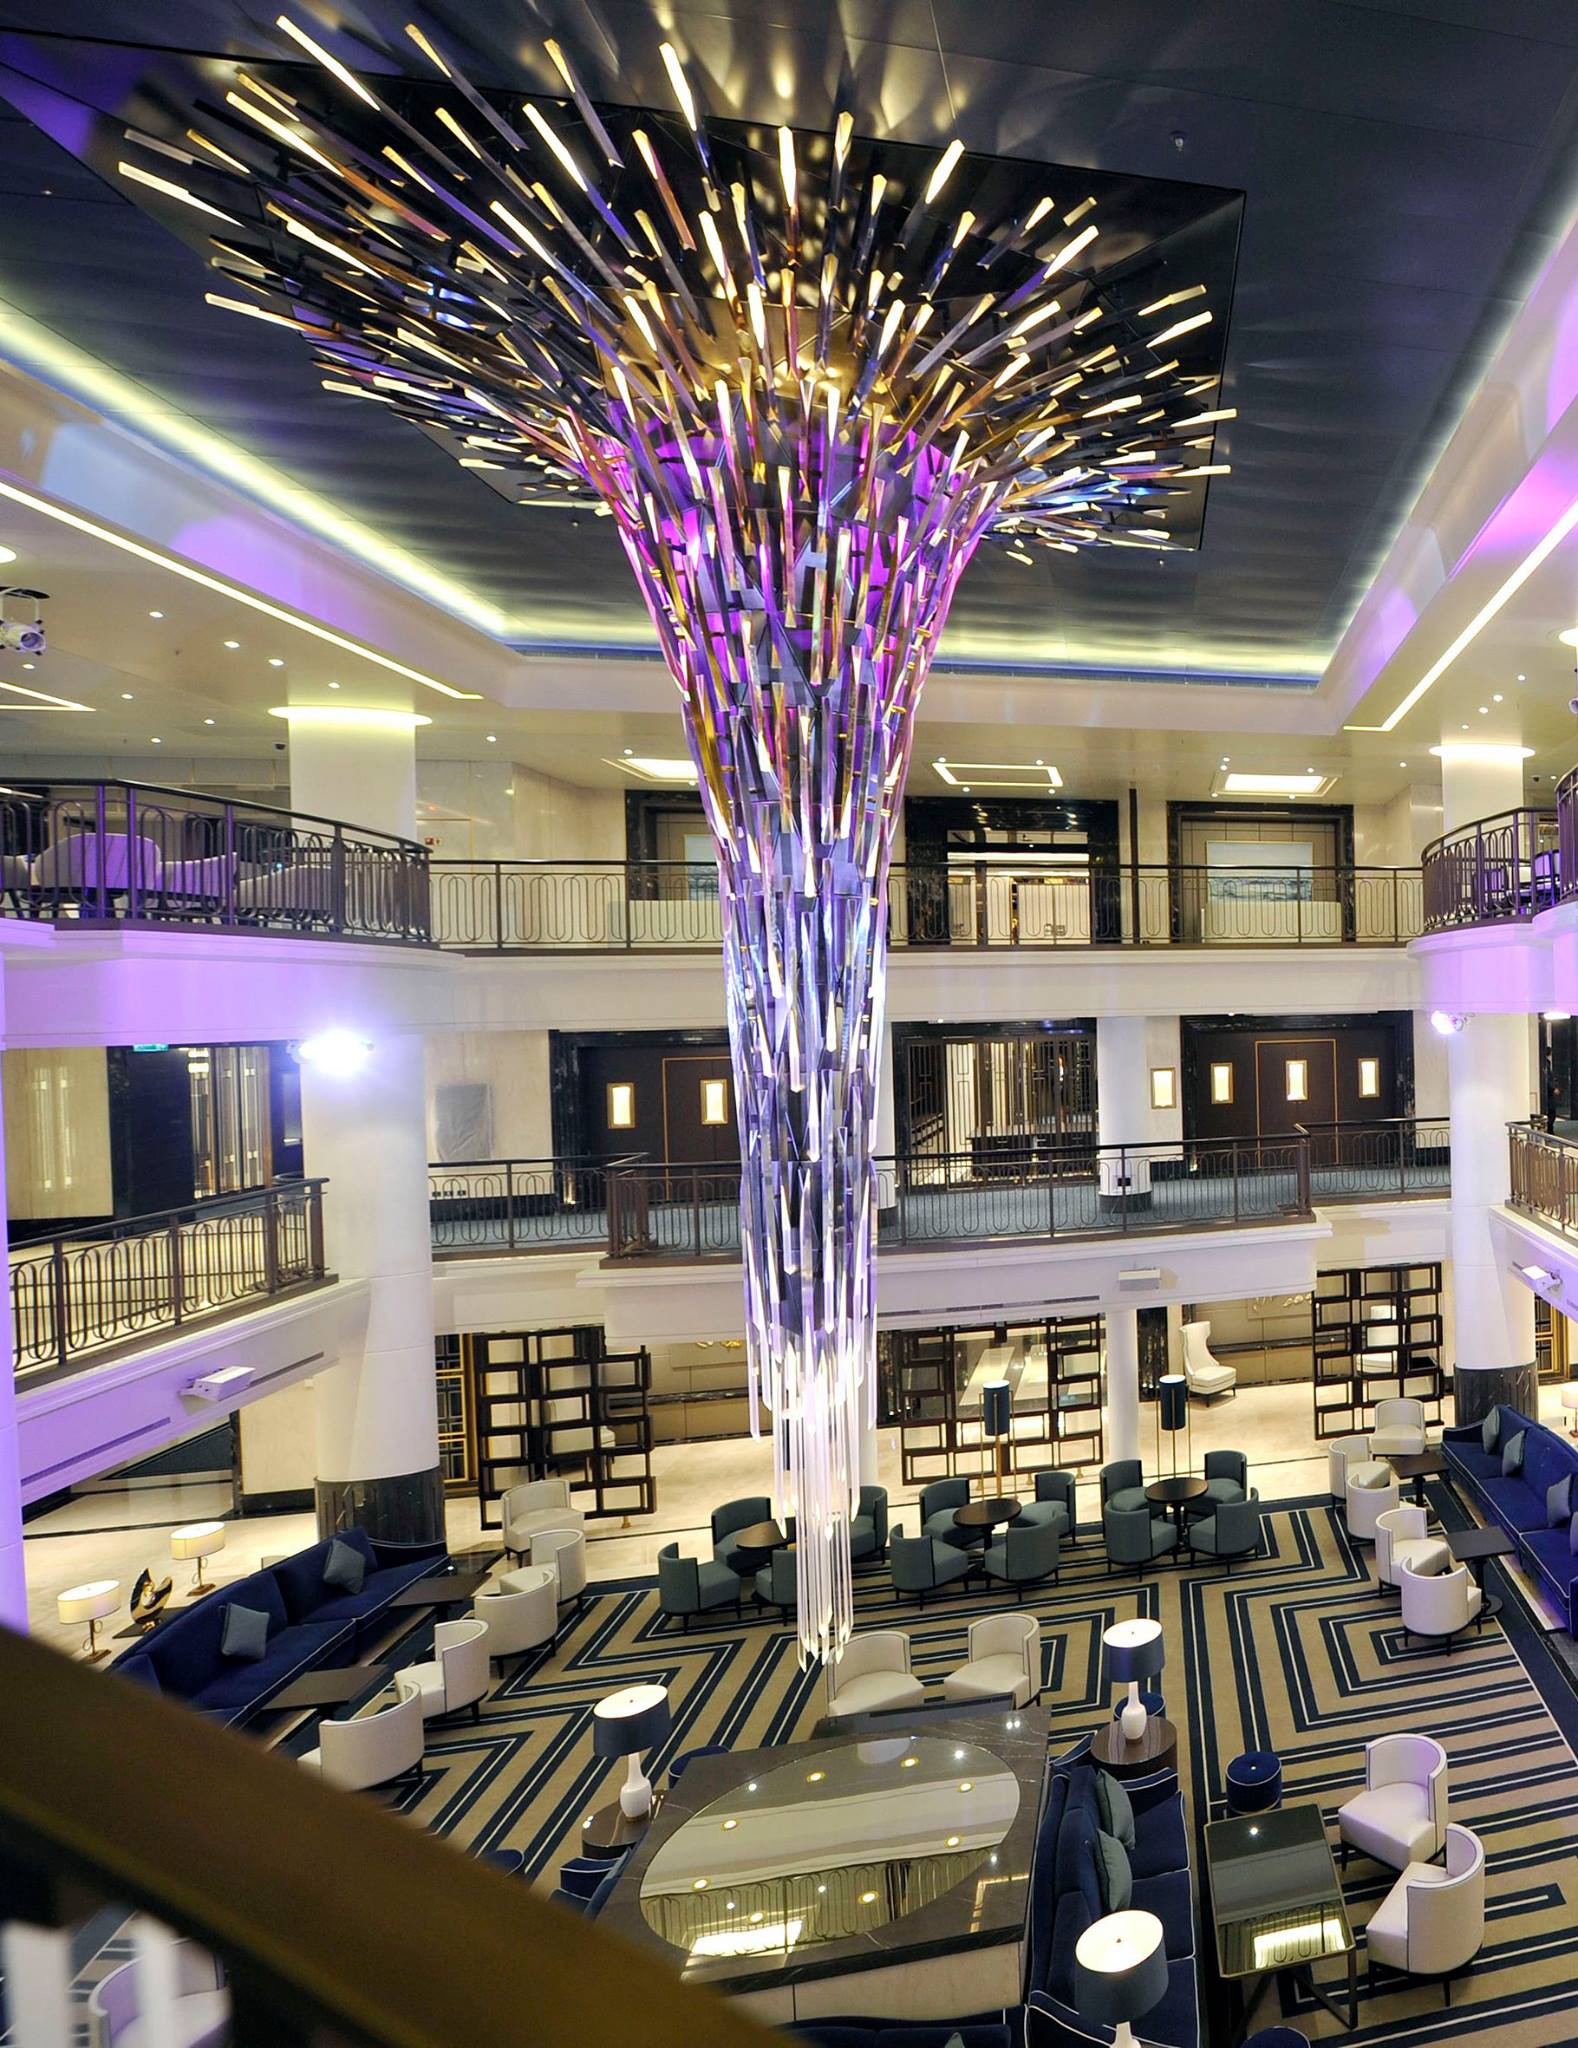 Starburst designed by Jona Hoad, P&O Cruises